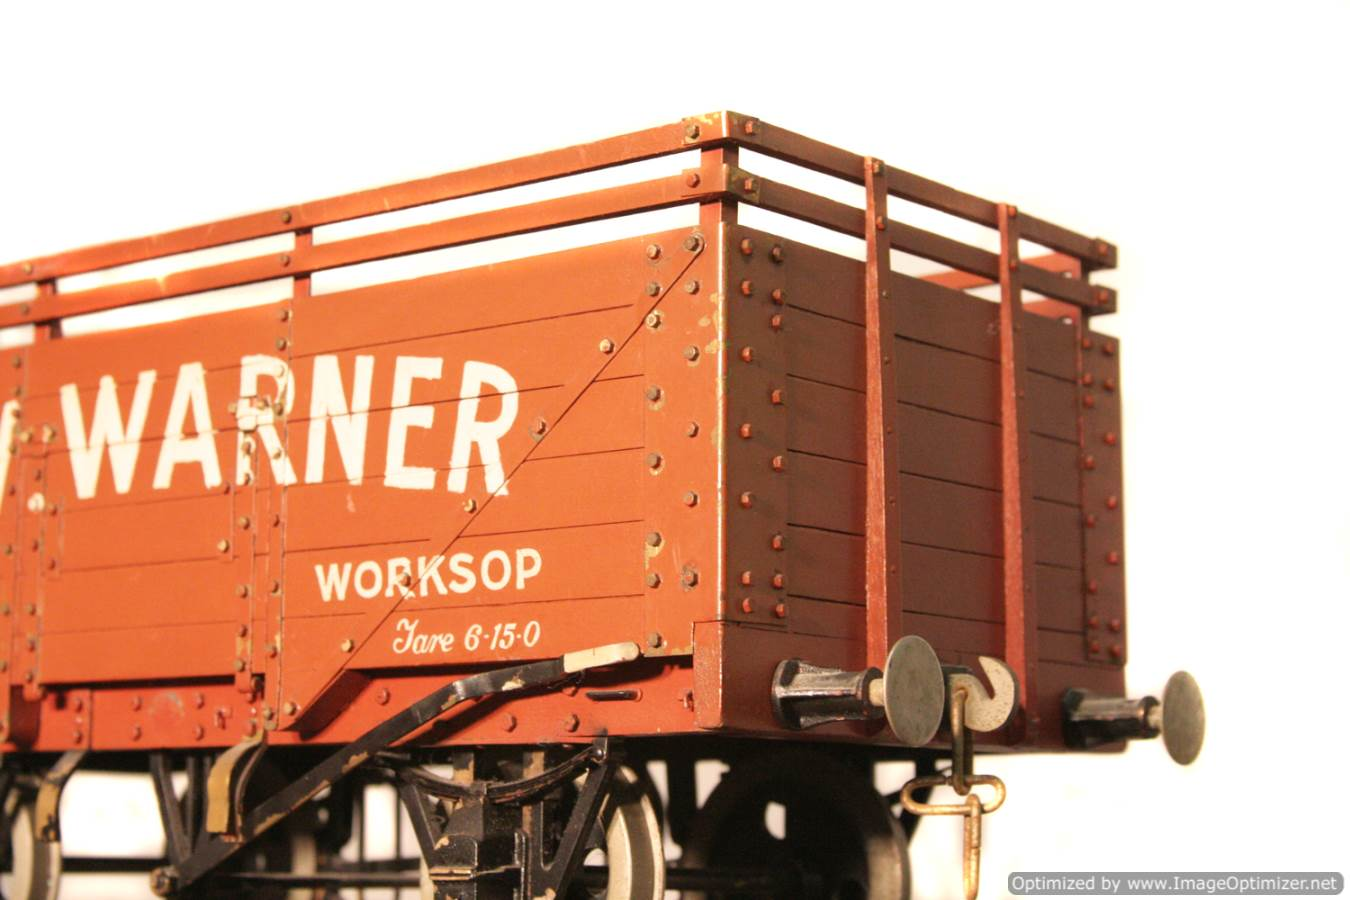 test CW Warner live steam wagon for sale 04 Optimized